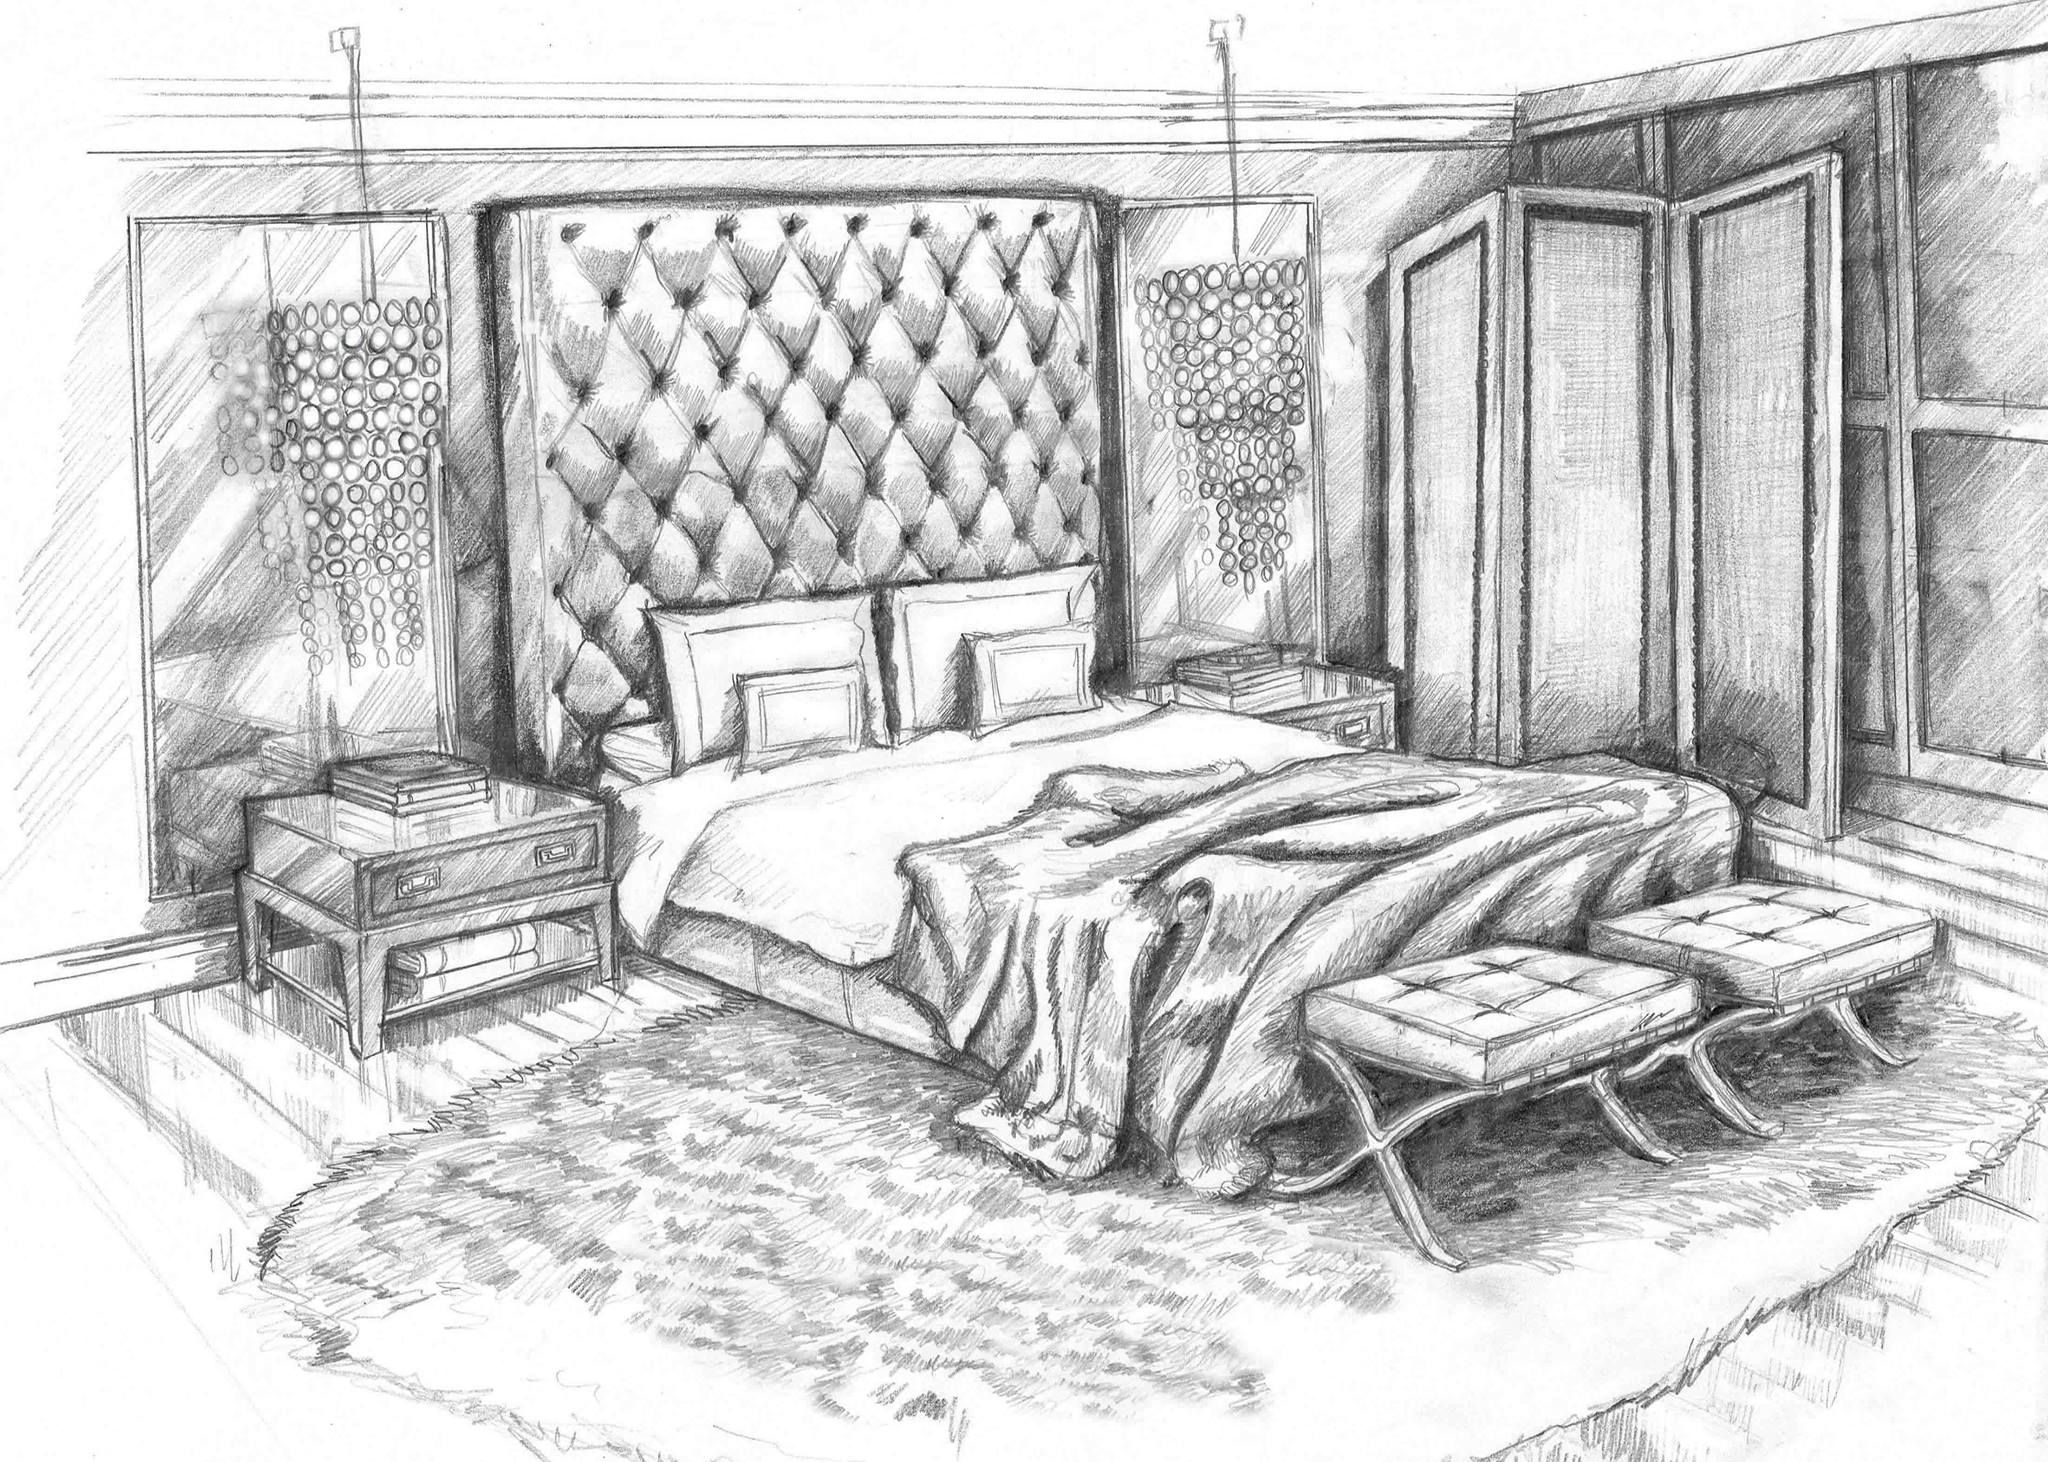 Pencil sketch art master bedroom concept design visual by for Bedroom designs sketch